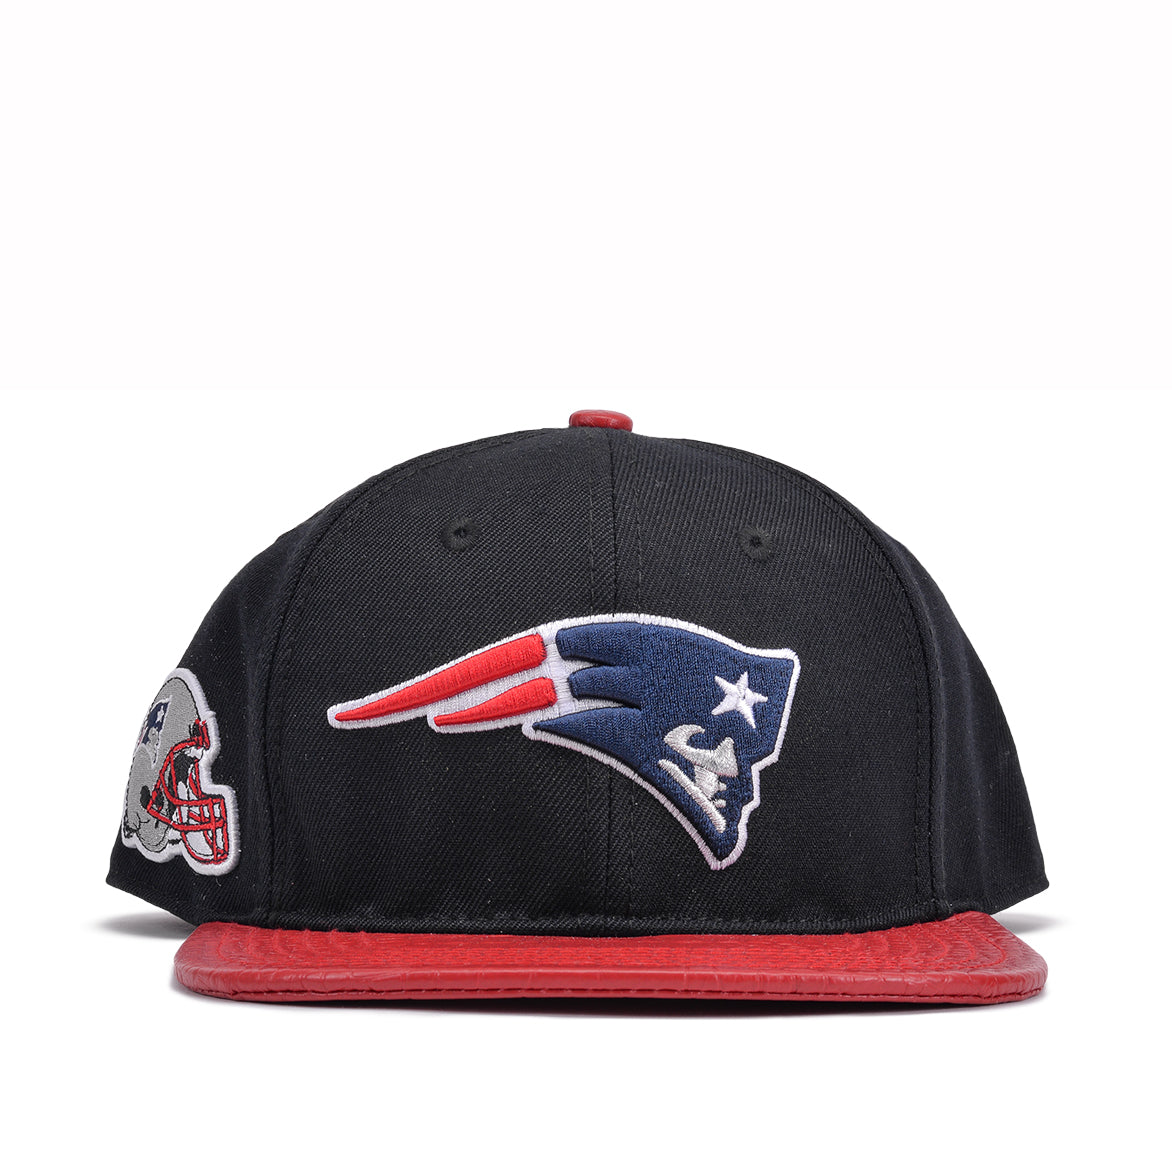 NEW ENGLAND PATRIOTS - LOGO RED